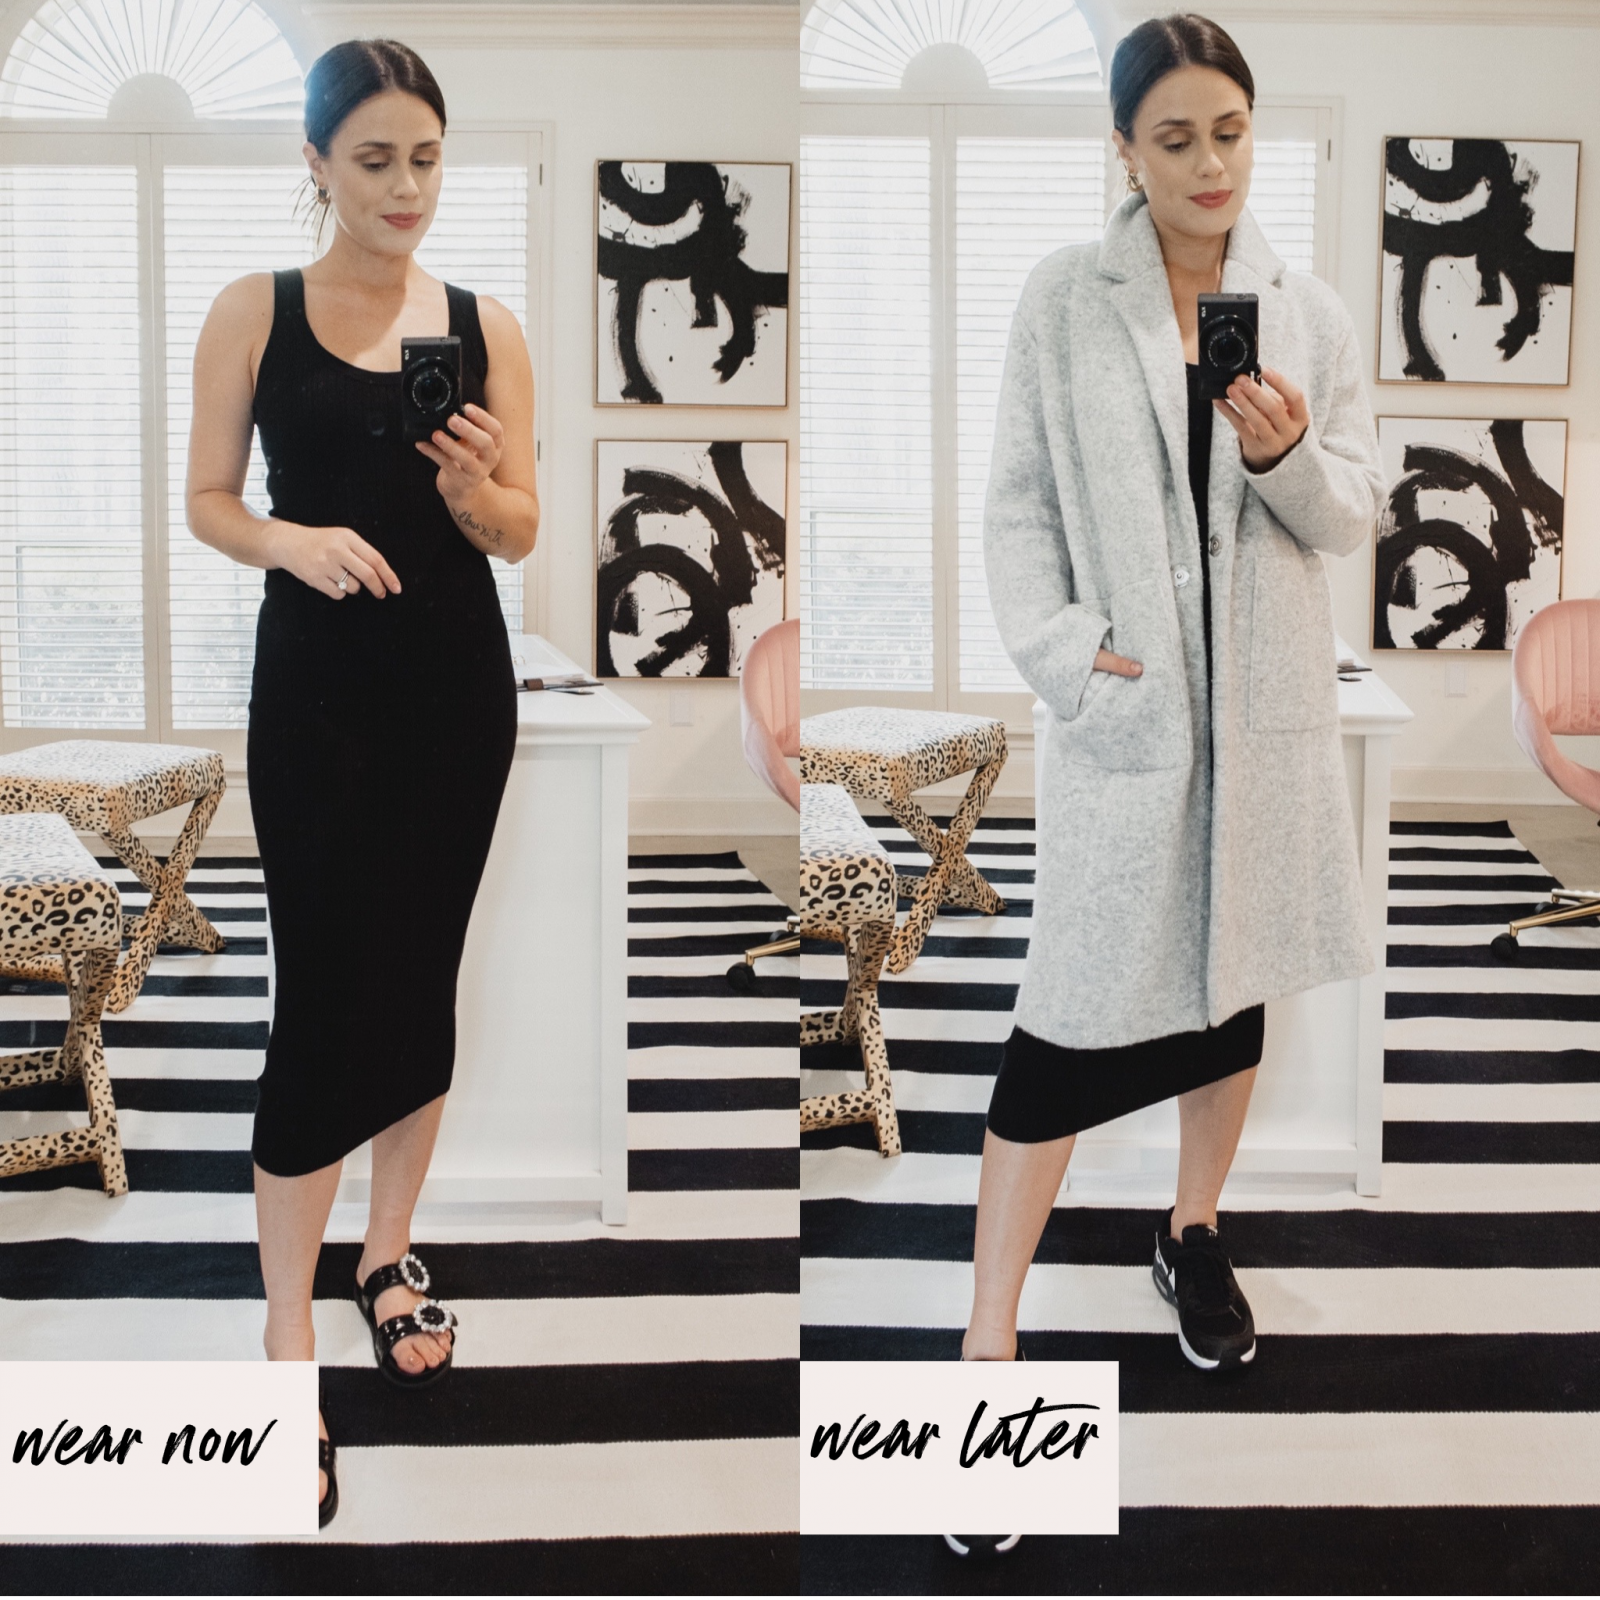 Elly Brown shows how to wear a black midi dress in the fall with a long cardigan and sneakers